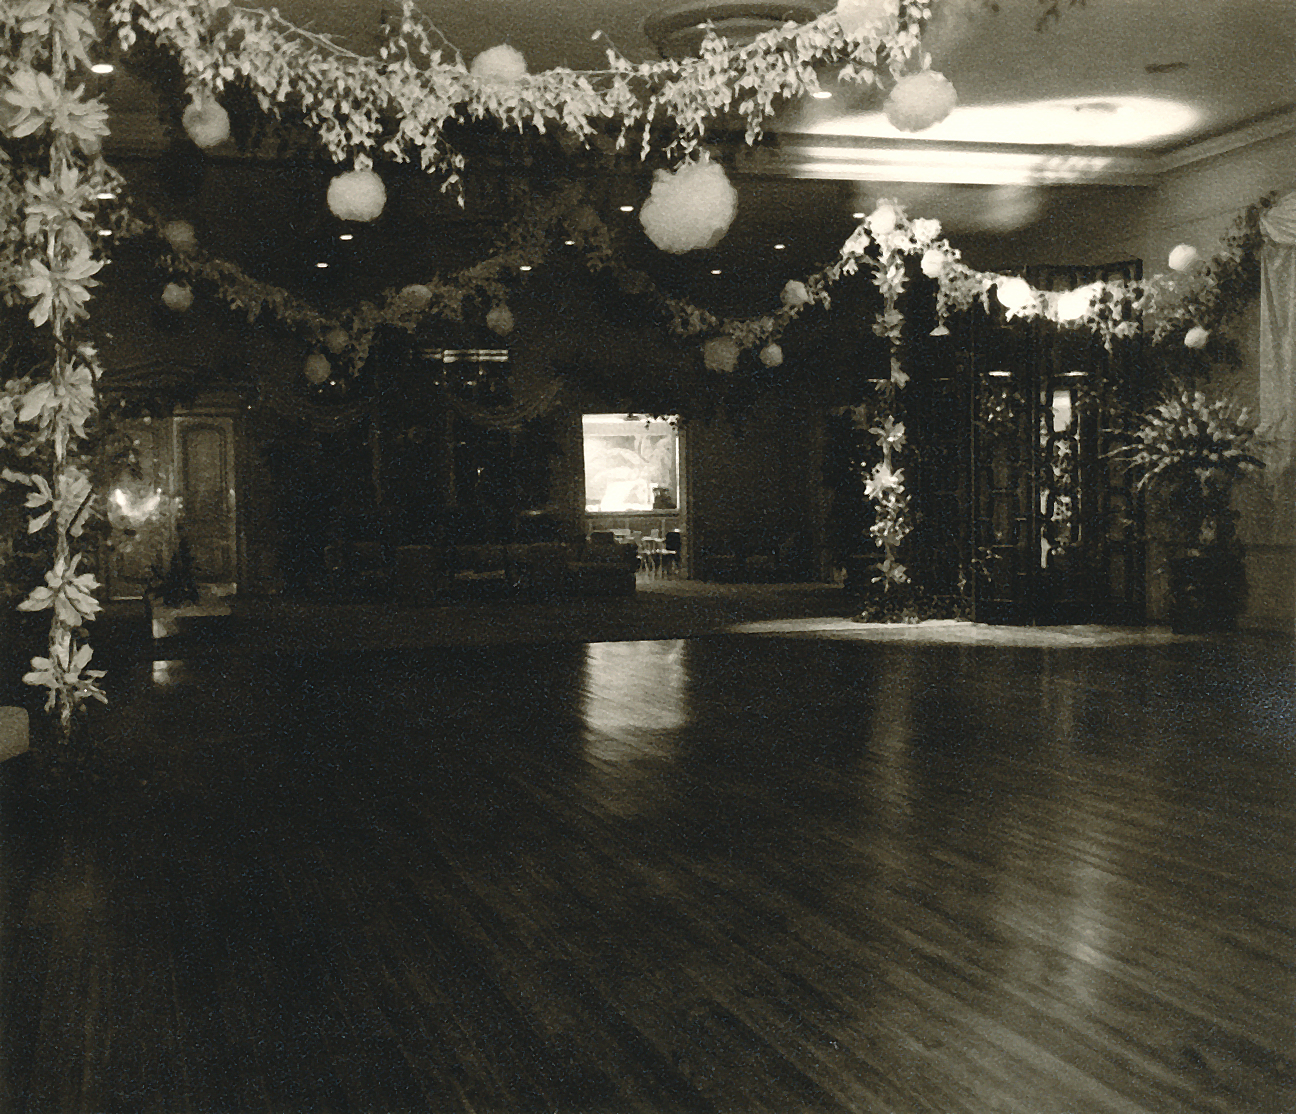 (above) The main ballroom at Brook Hollow Golf Club. Each deb is presented at her own ball by her parents. In this case my mother and a fellow deb, Gloria Slaughter, and their parents teamed up. It's much more affordable that way.